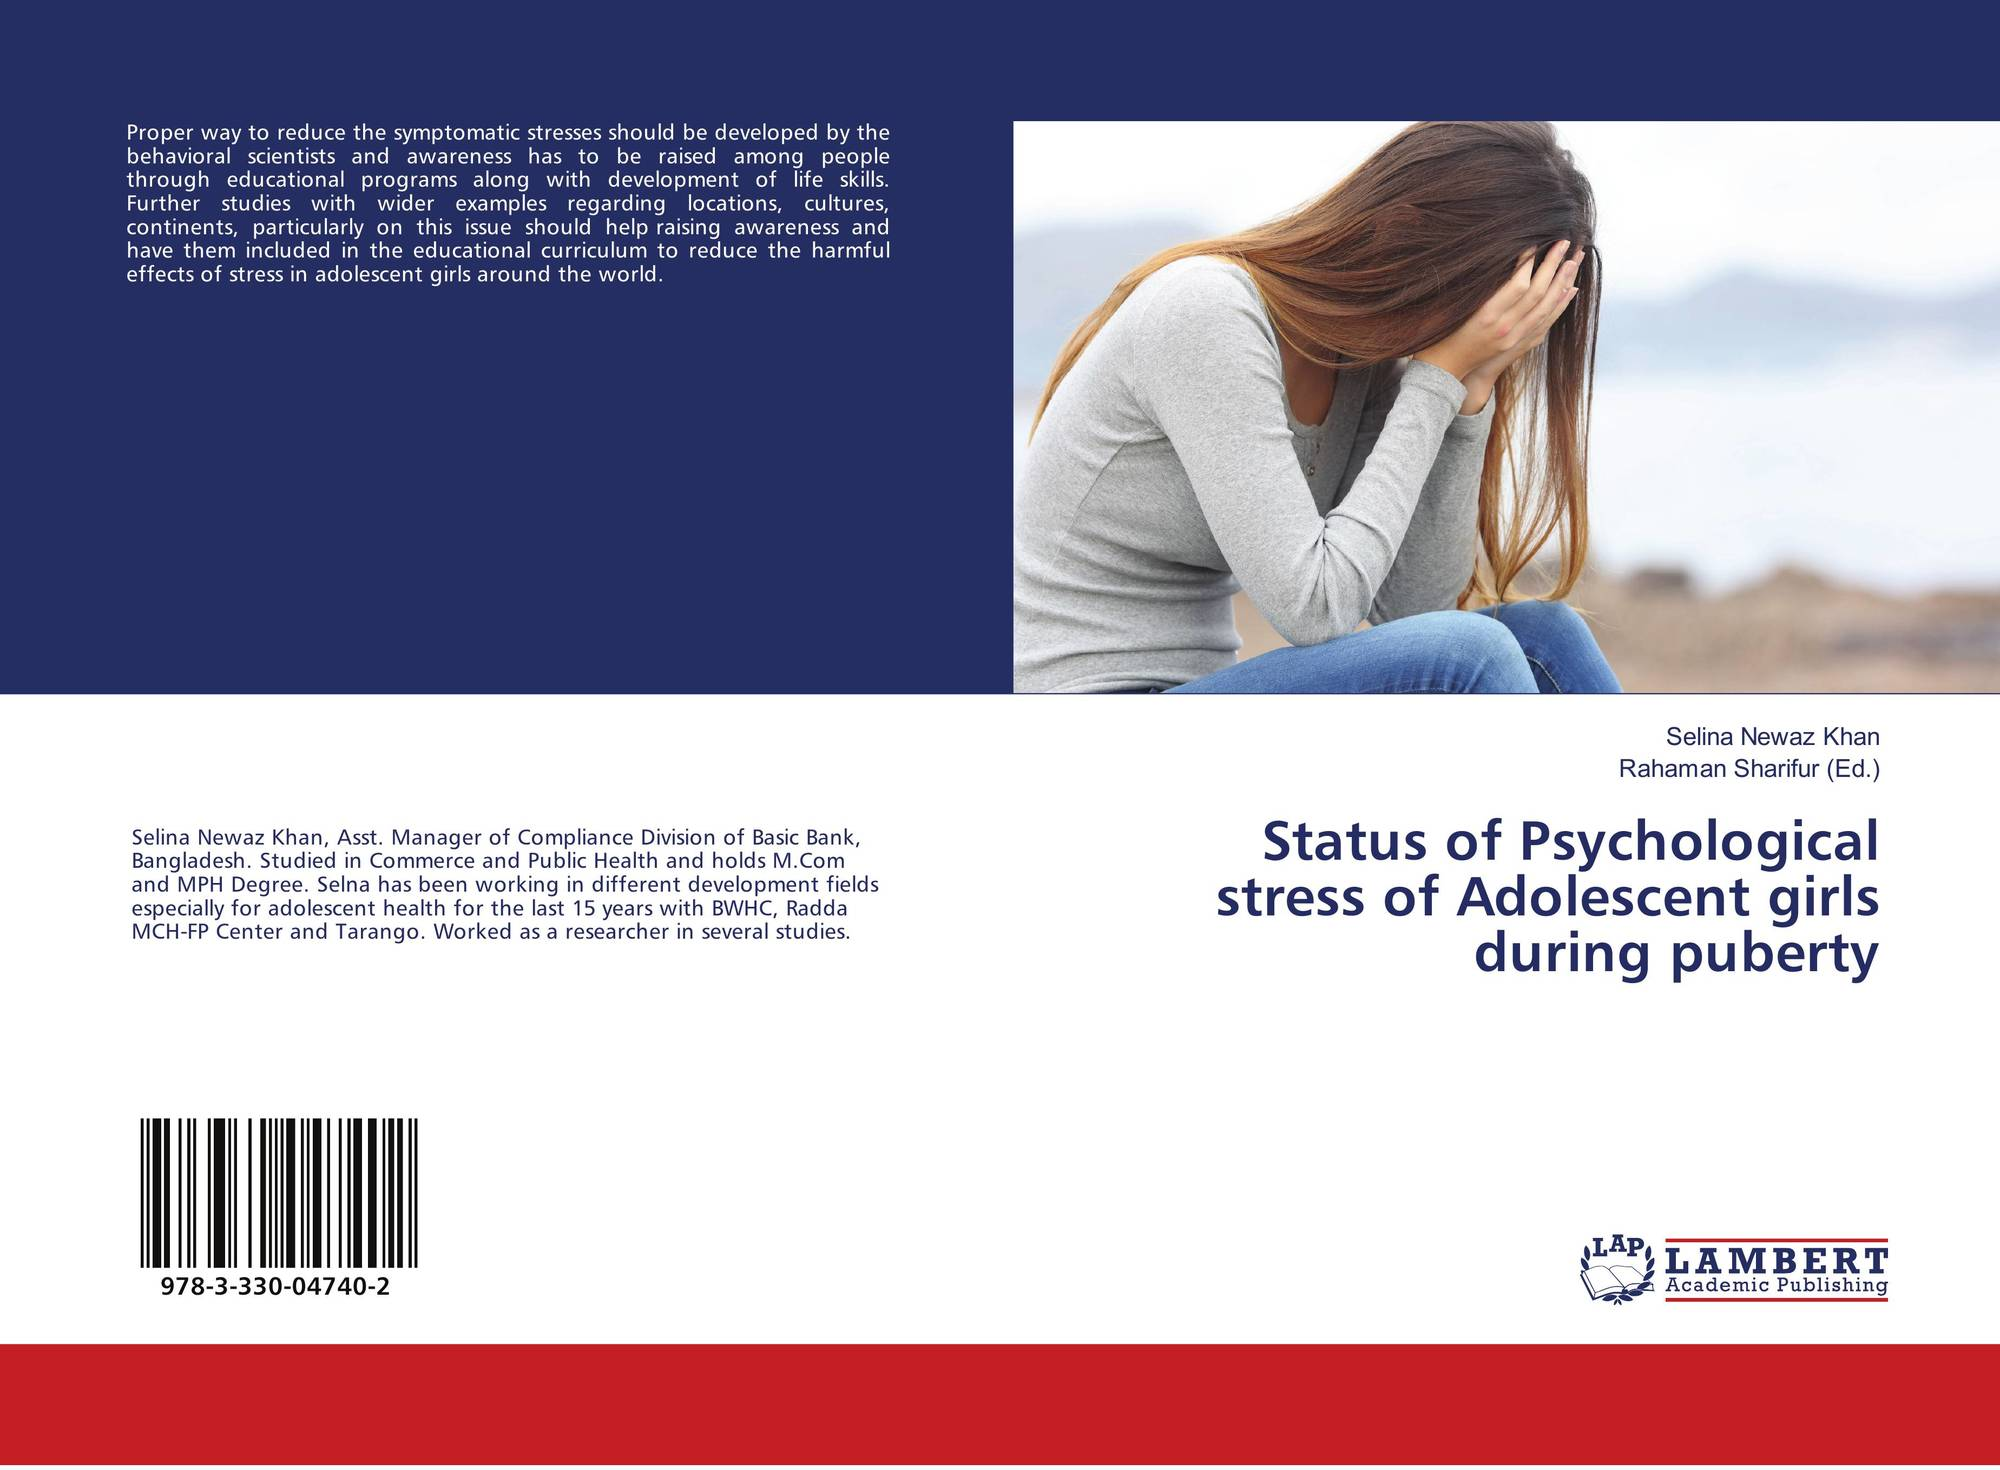 Status Of Psychological Stress Of Adolescent Girls During Puberty